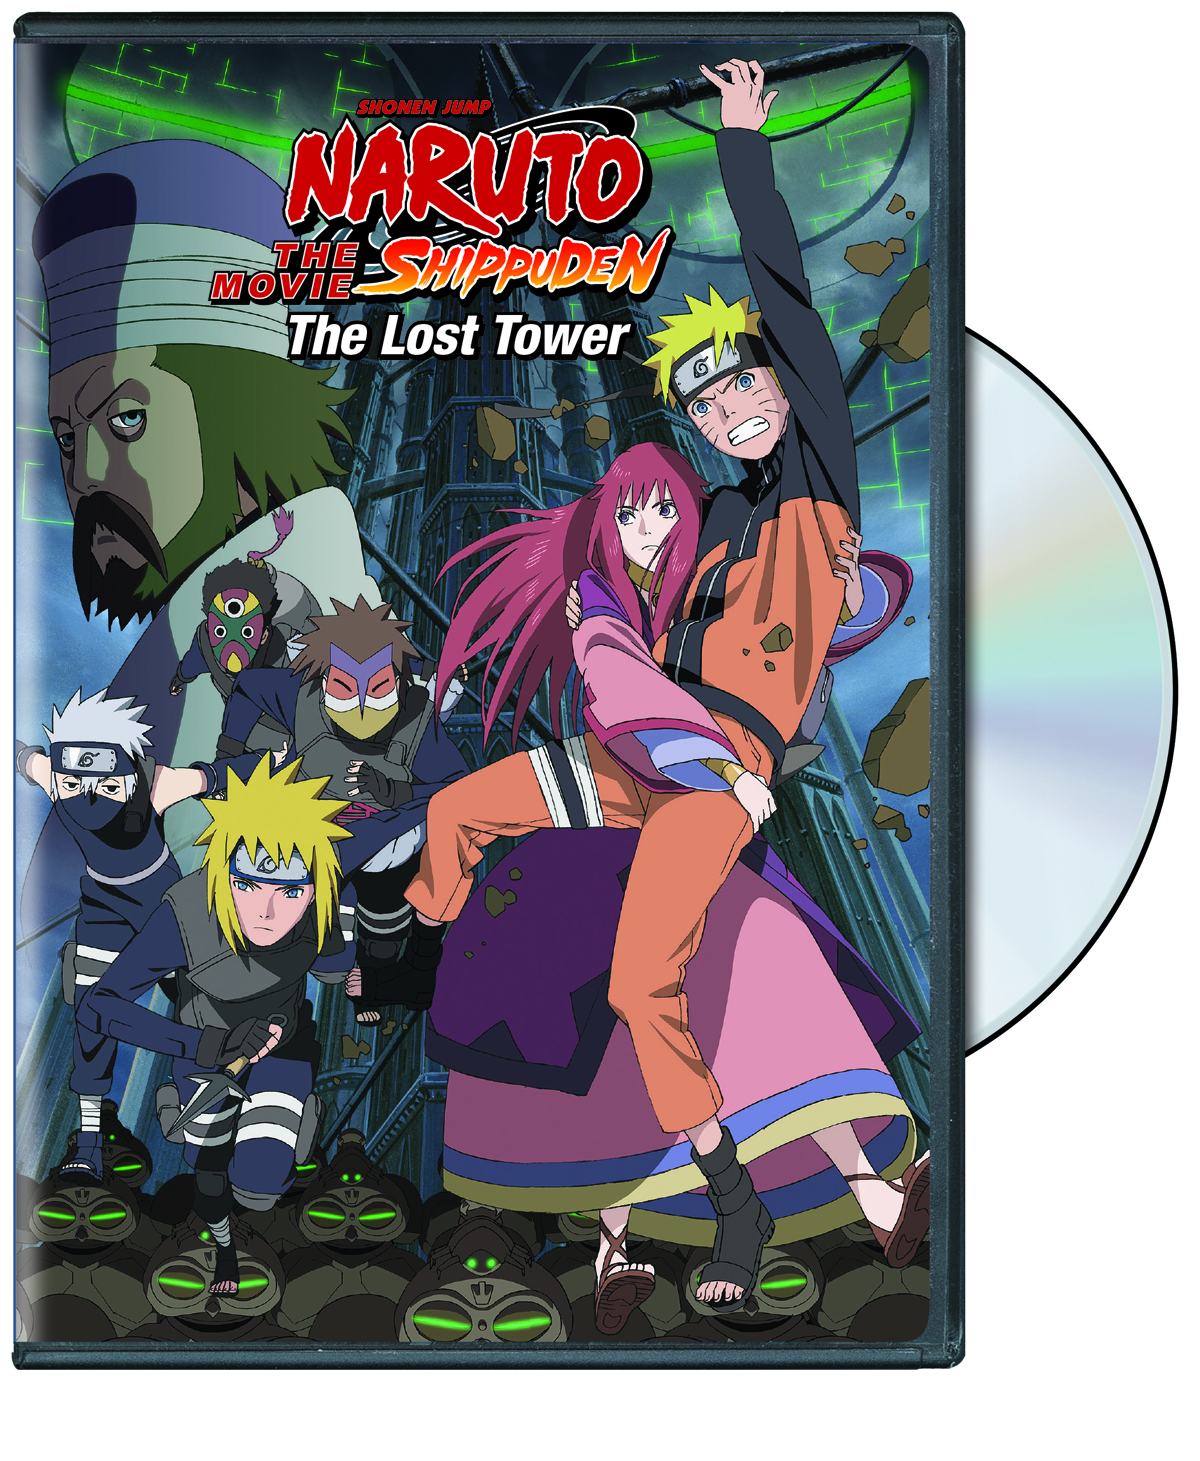 NARUTO SHIPPUDEN THE MOVIE THE LOST TOWER DVD